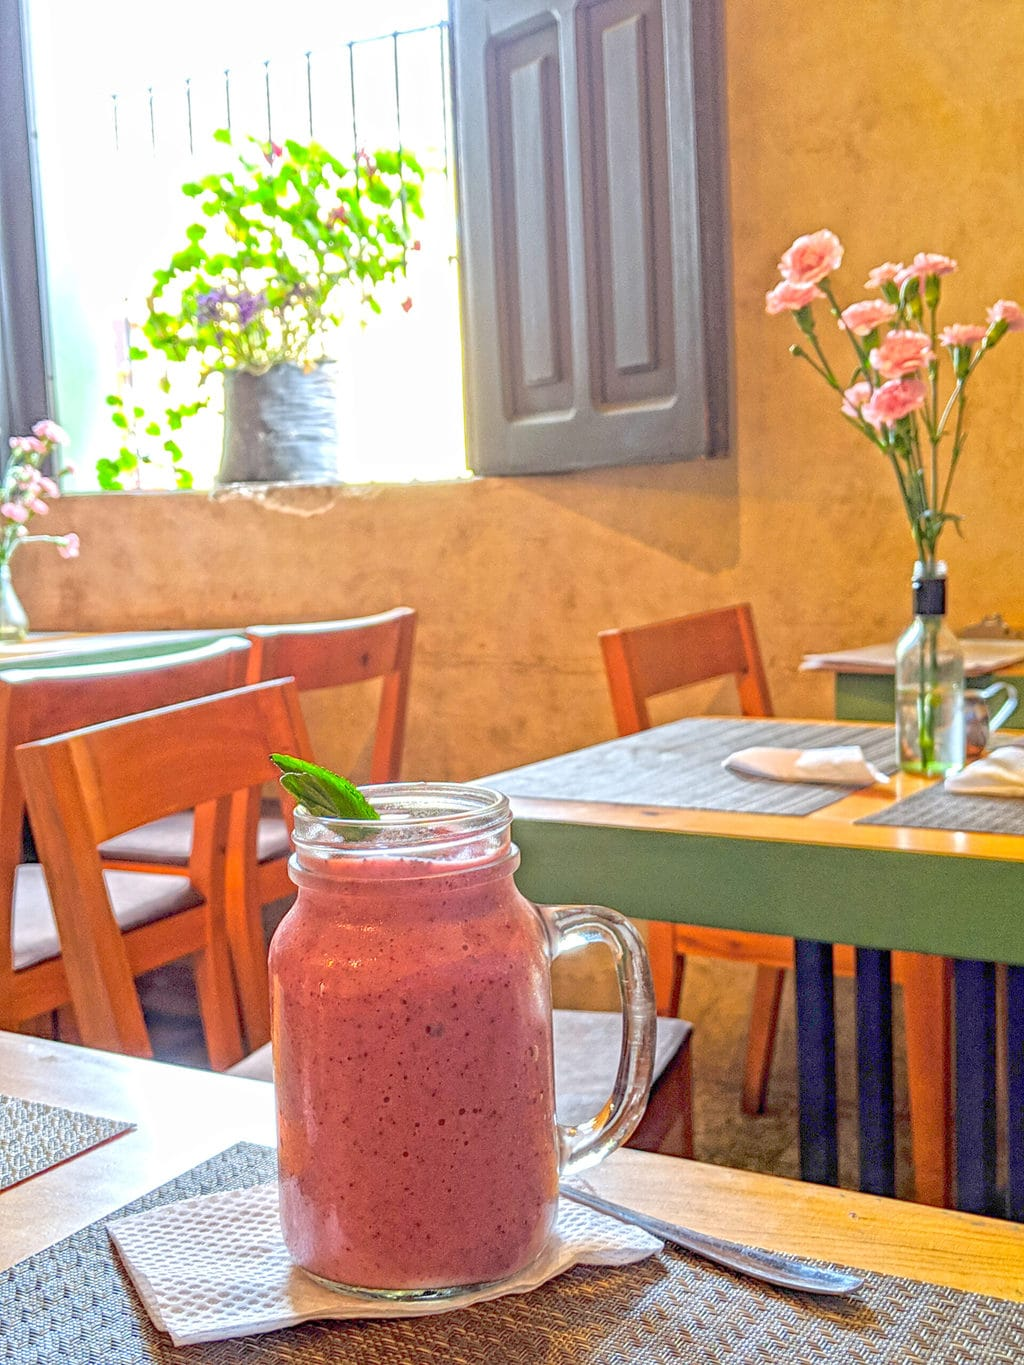 Smoothie in Guatemala